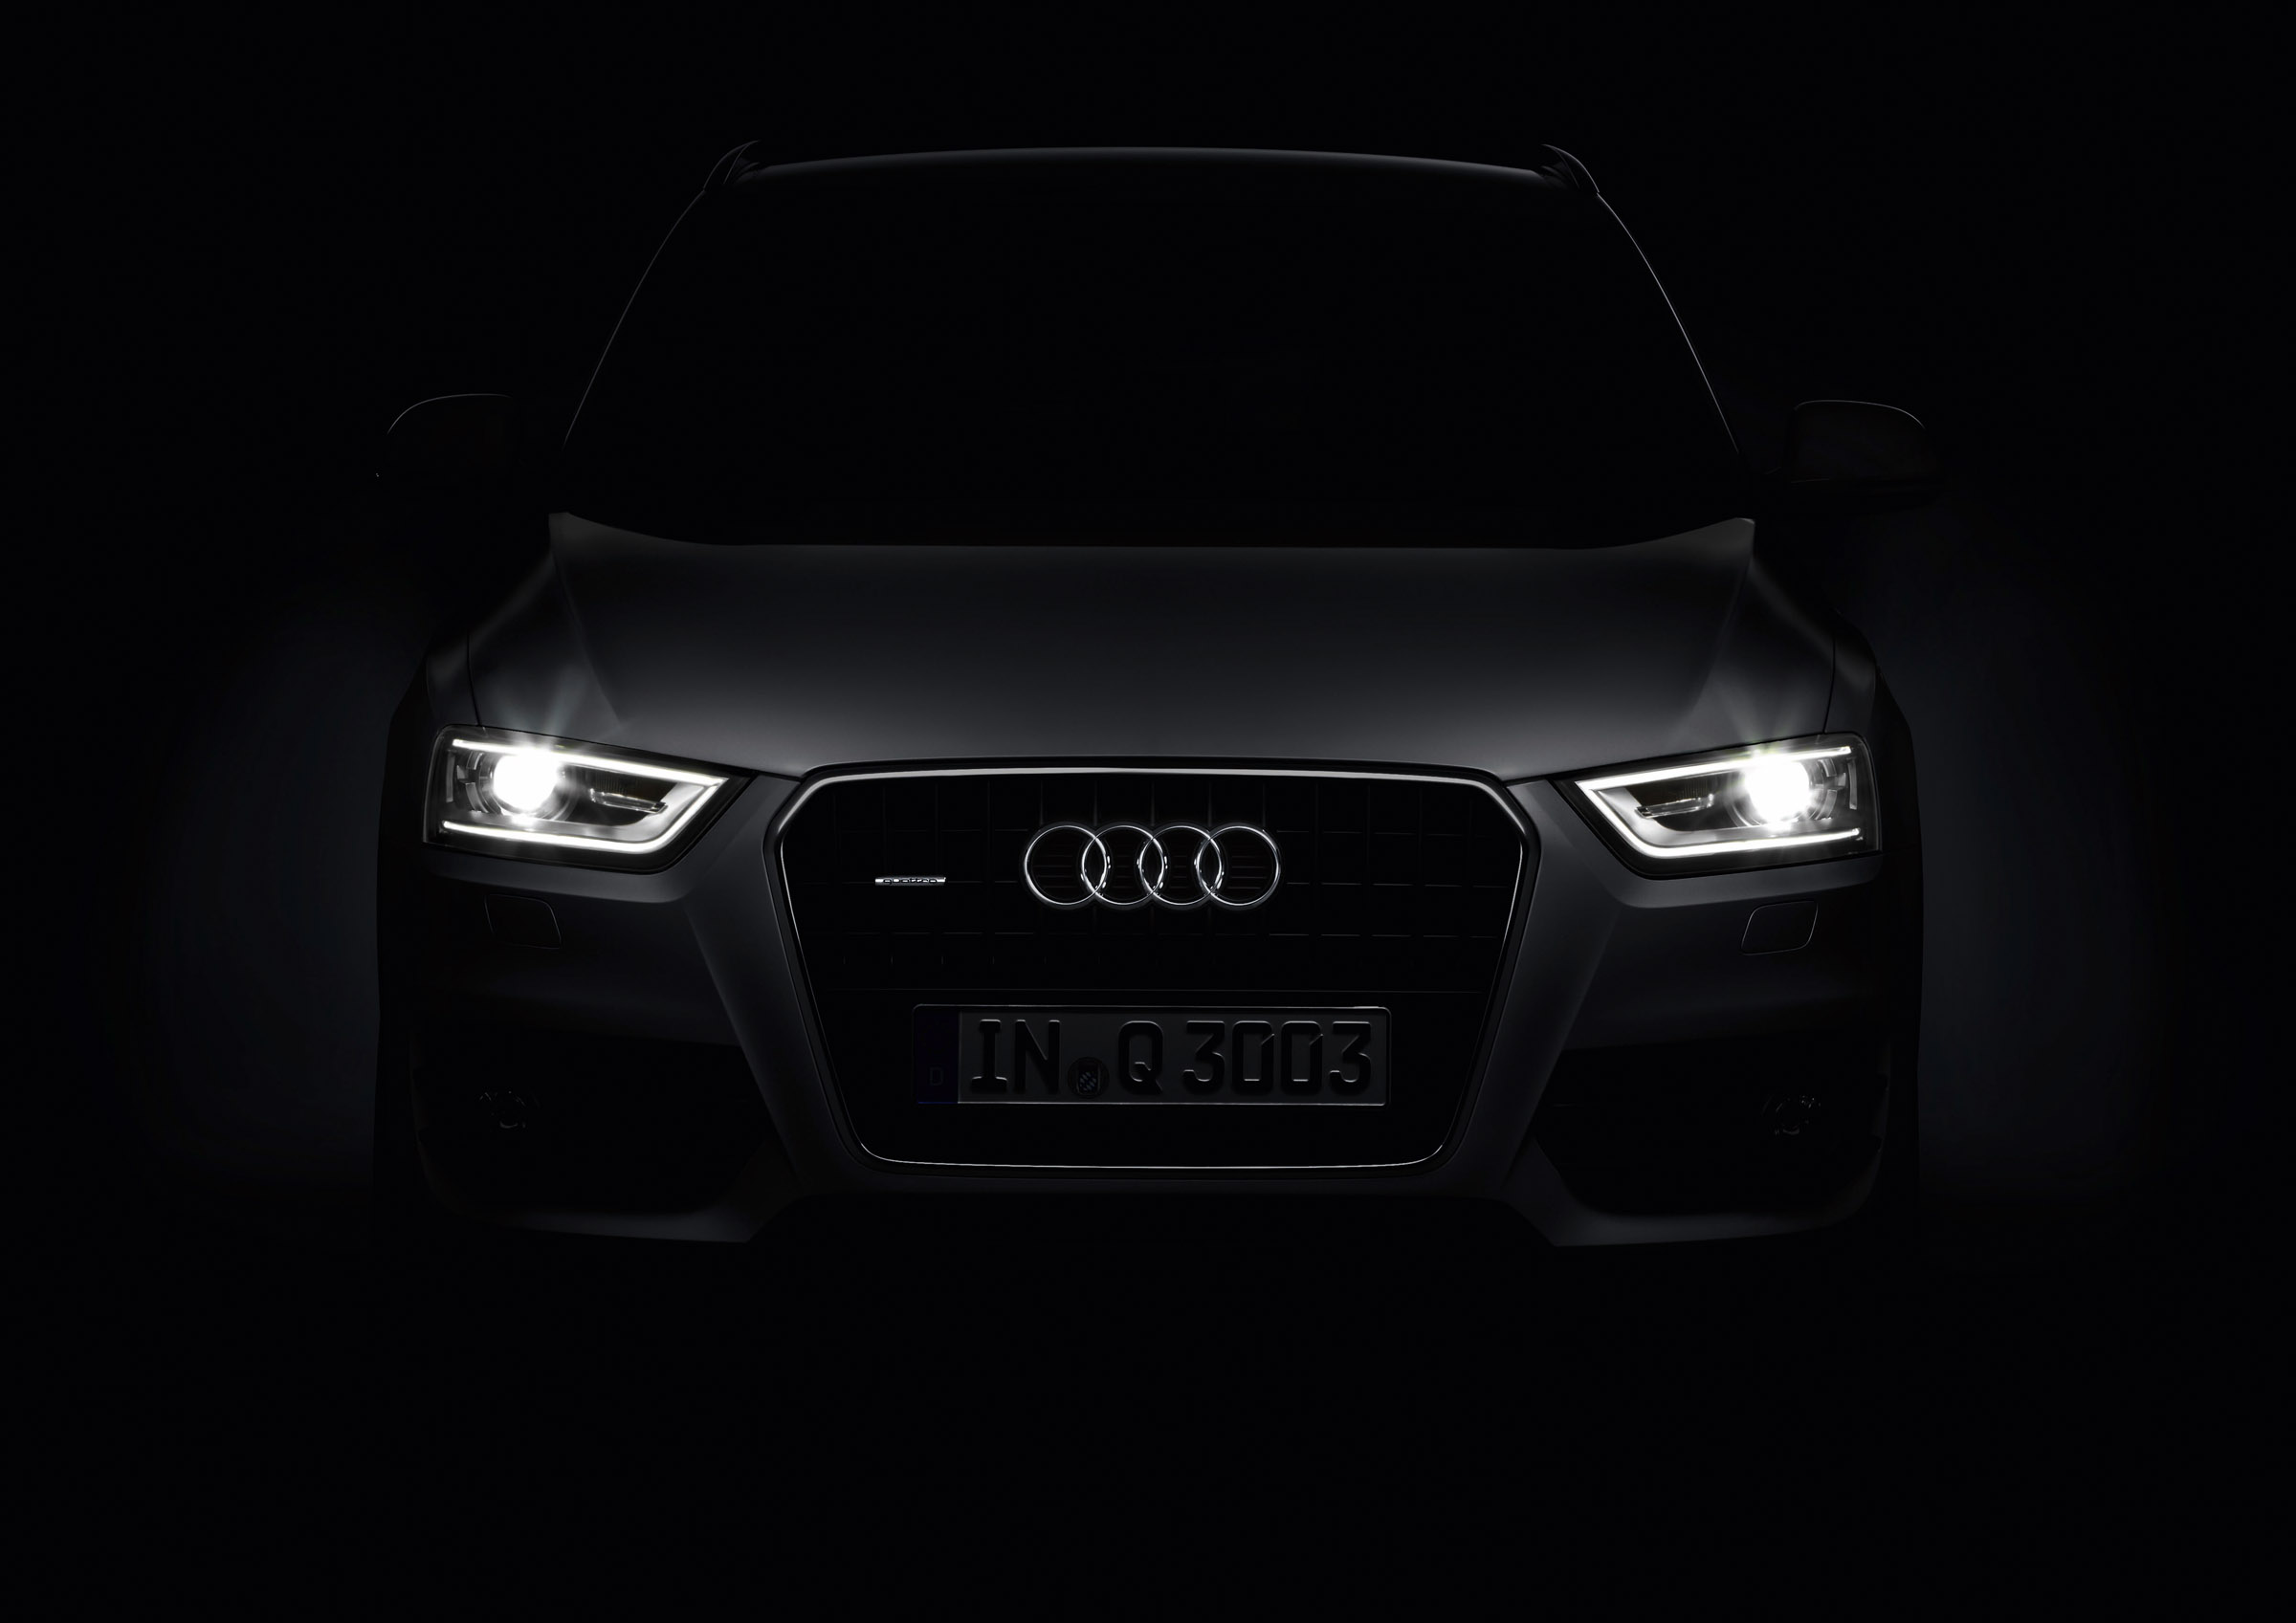 Audi Rs3 Wallpaper Hd Audi Celebrates 250th Quattro Equipped Model With The New